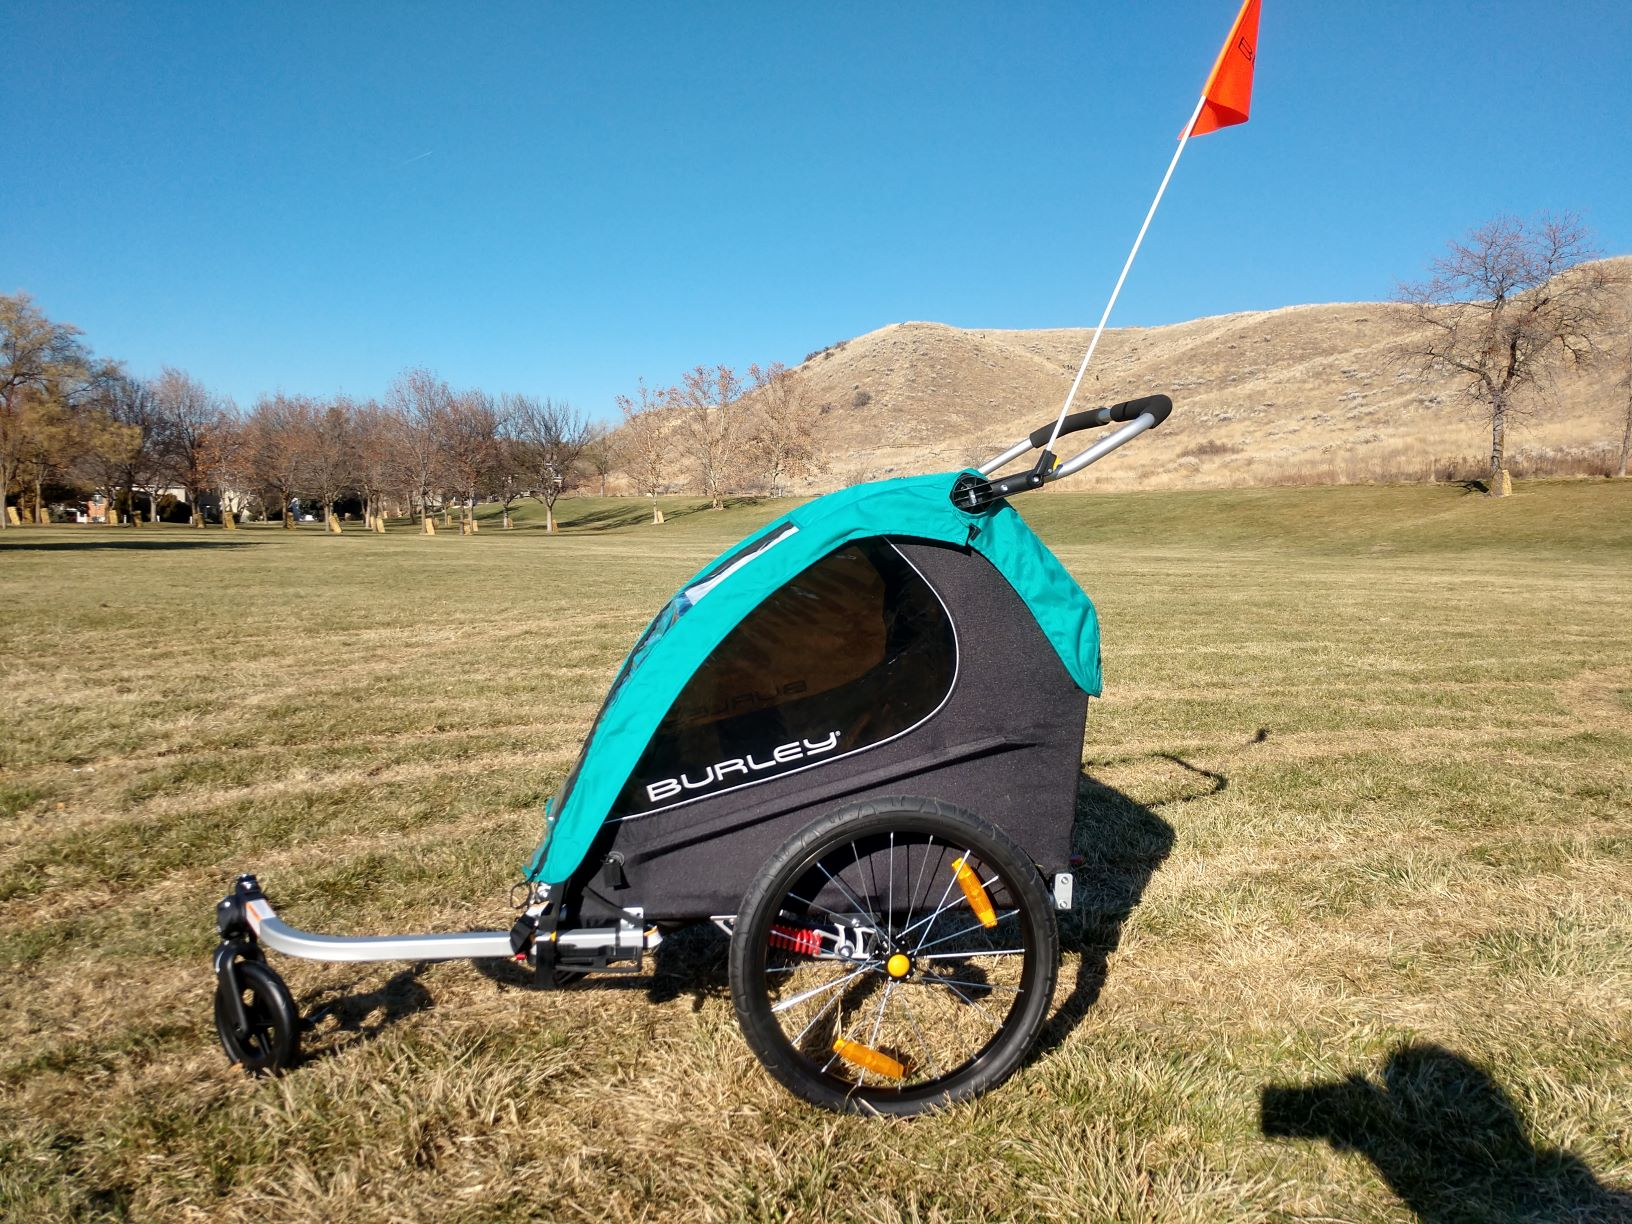 burley encore x multi sport trailer review (1)